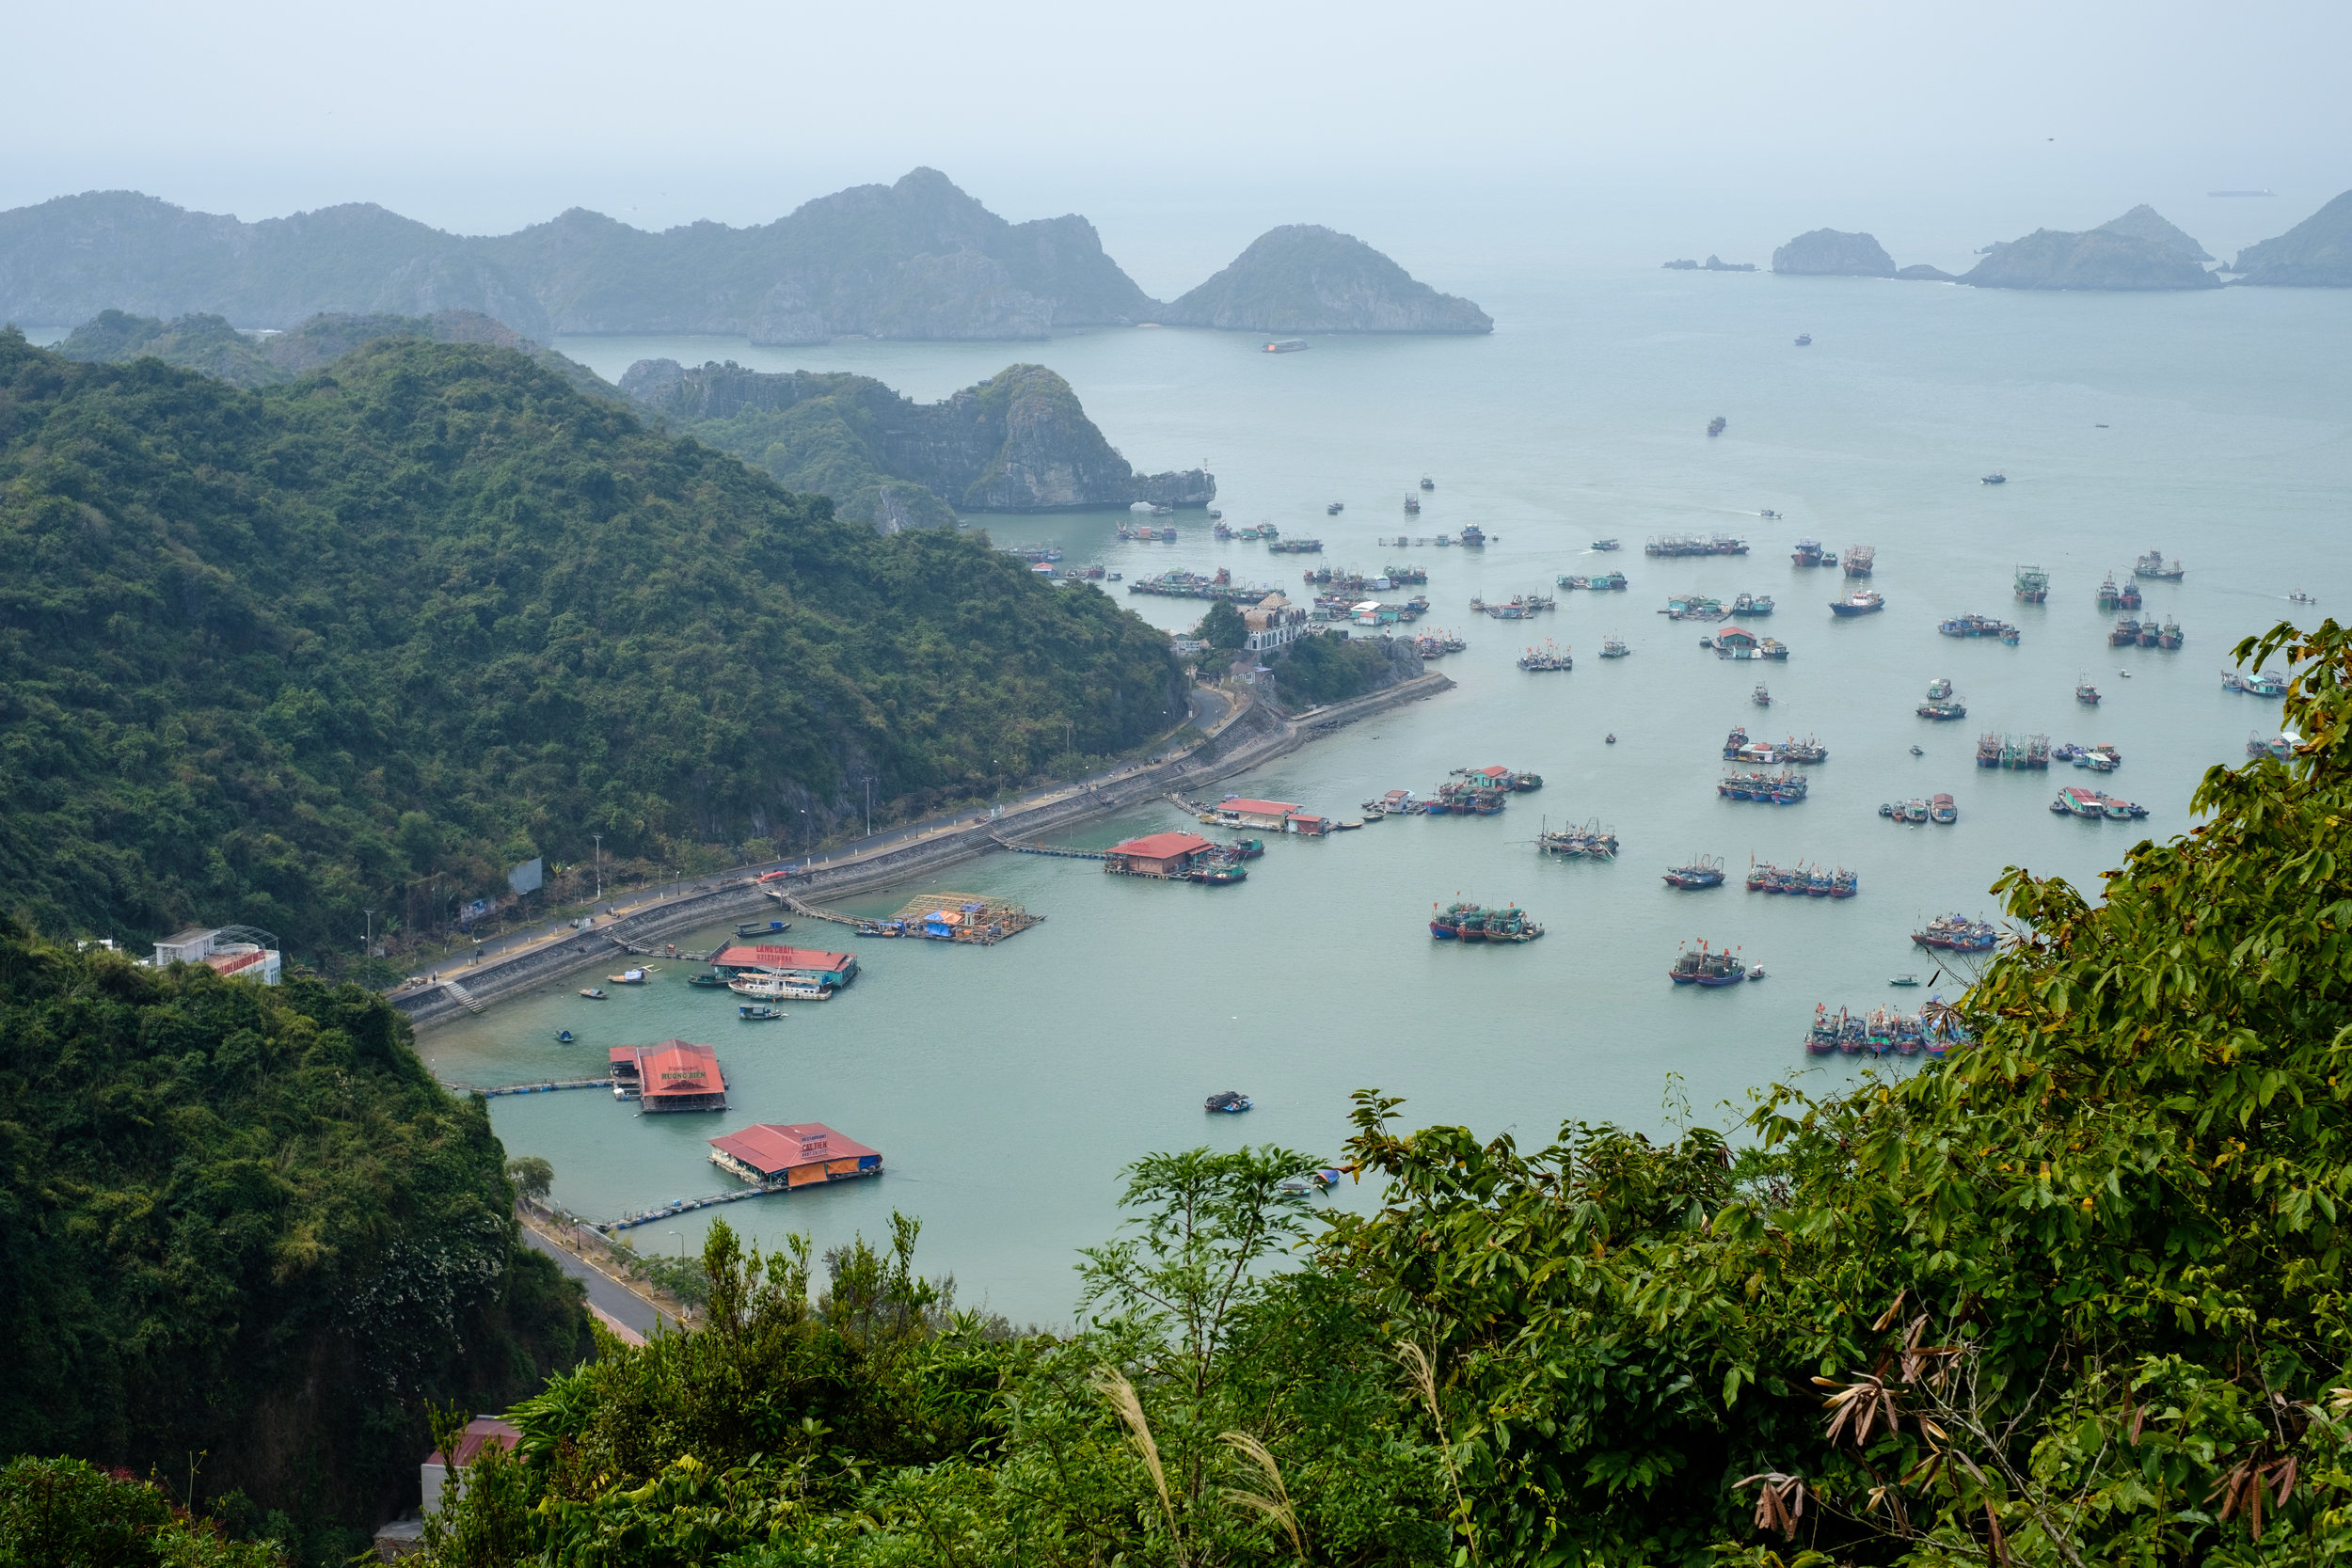 The bay of Cat Ba Town